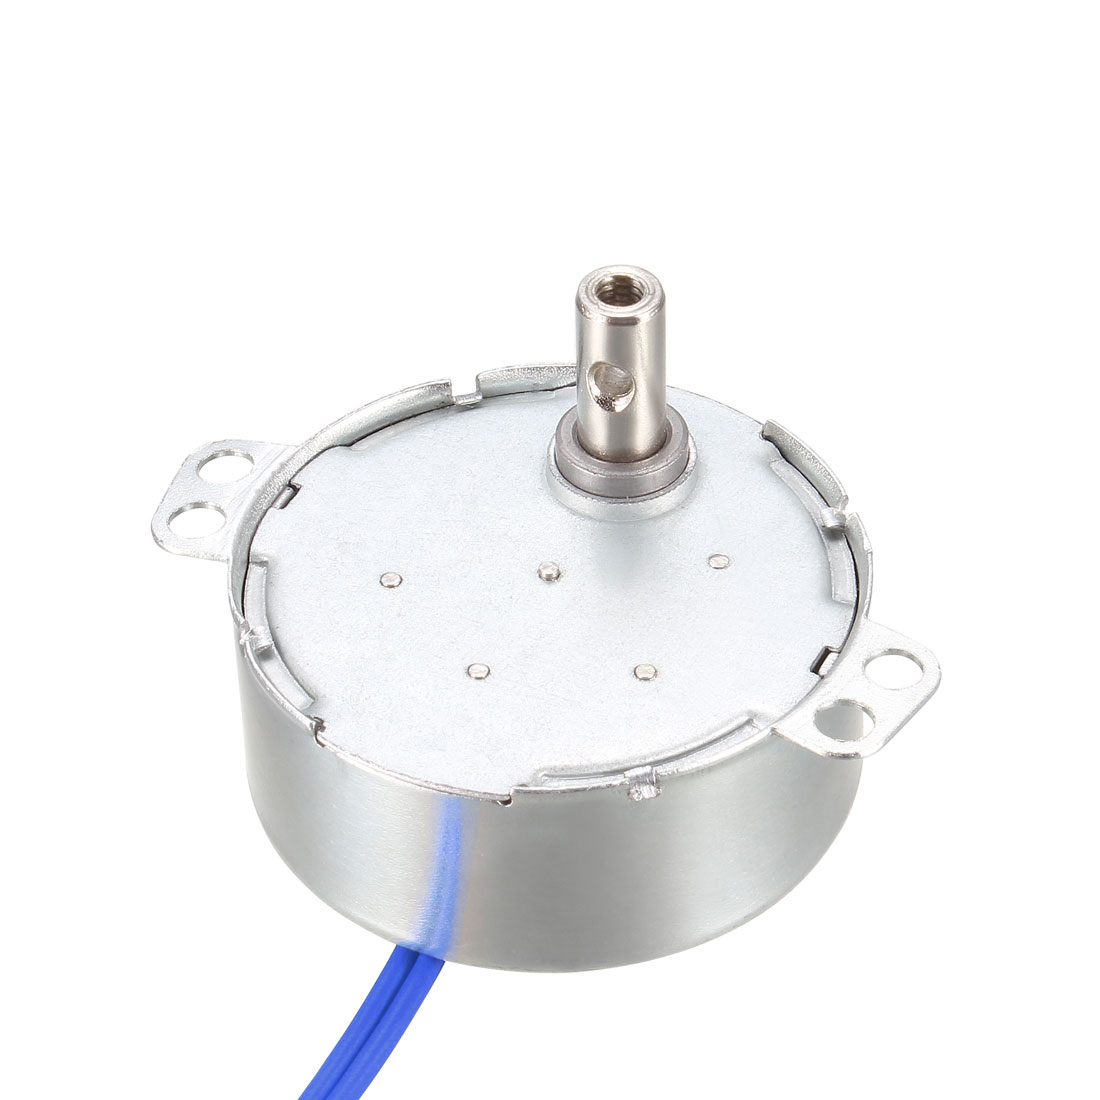 Synchronous Motor Turntable Motor 100-127 VAC 50-60Hz CCW/CW 4W 1.3-1.5RPM